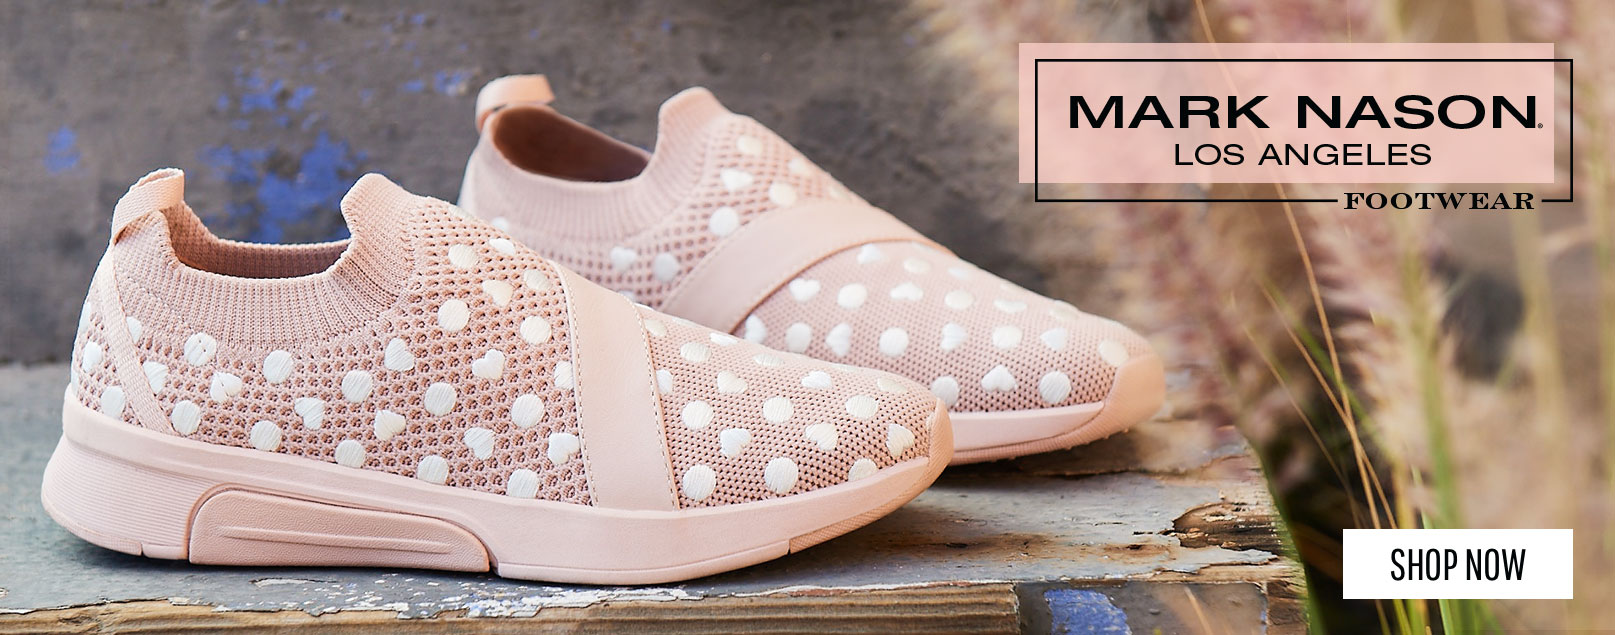 Discover the Mark Nason Los Angeles women's collection of sophisticated fashion  sneakers with gorgeous detail and